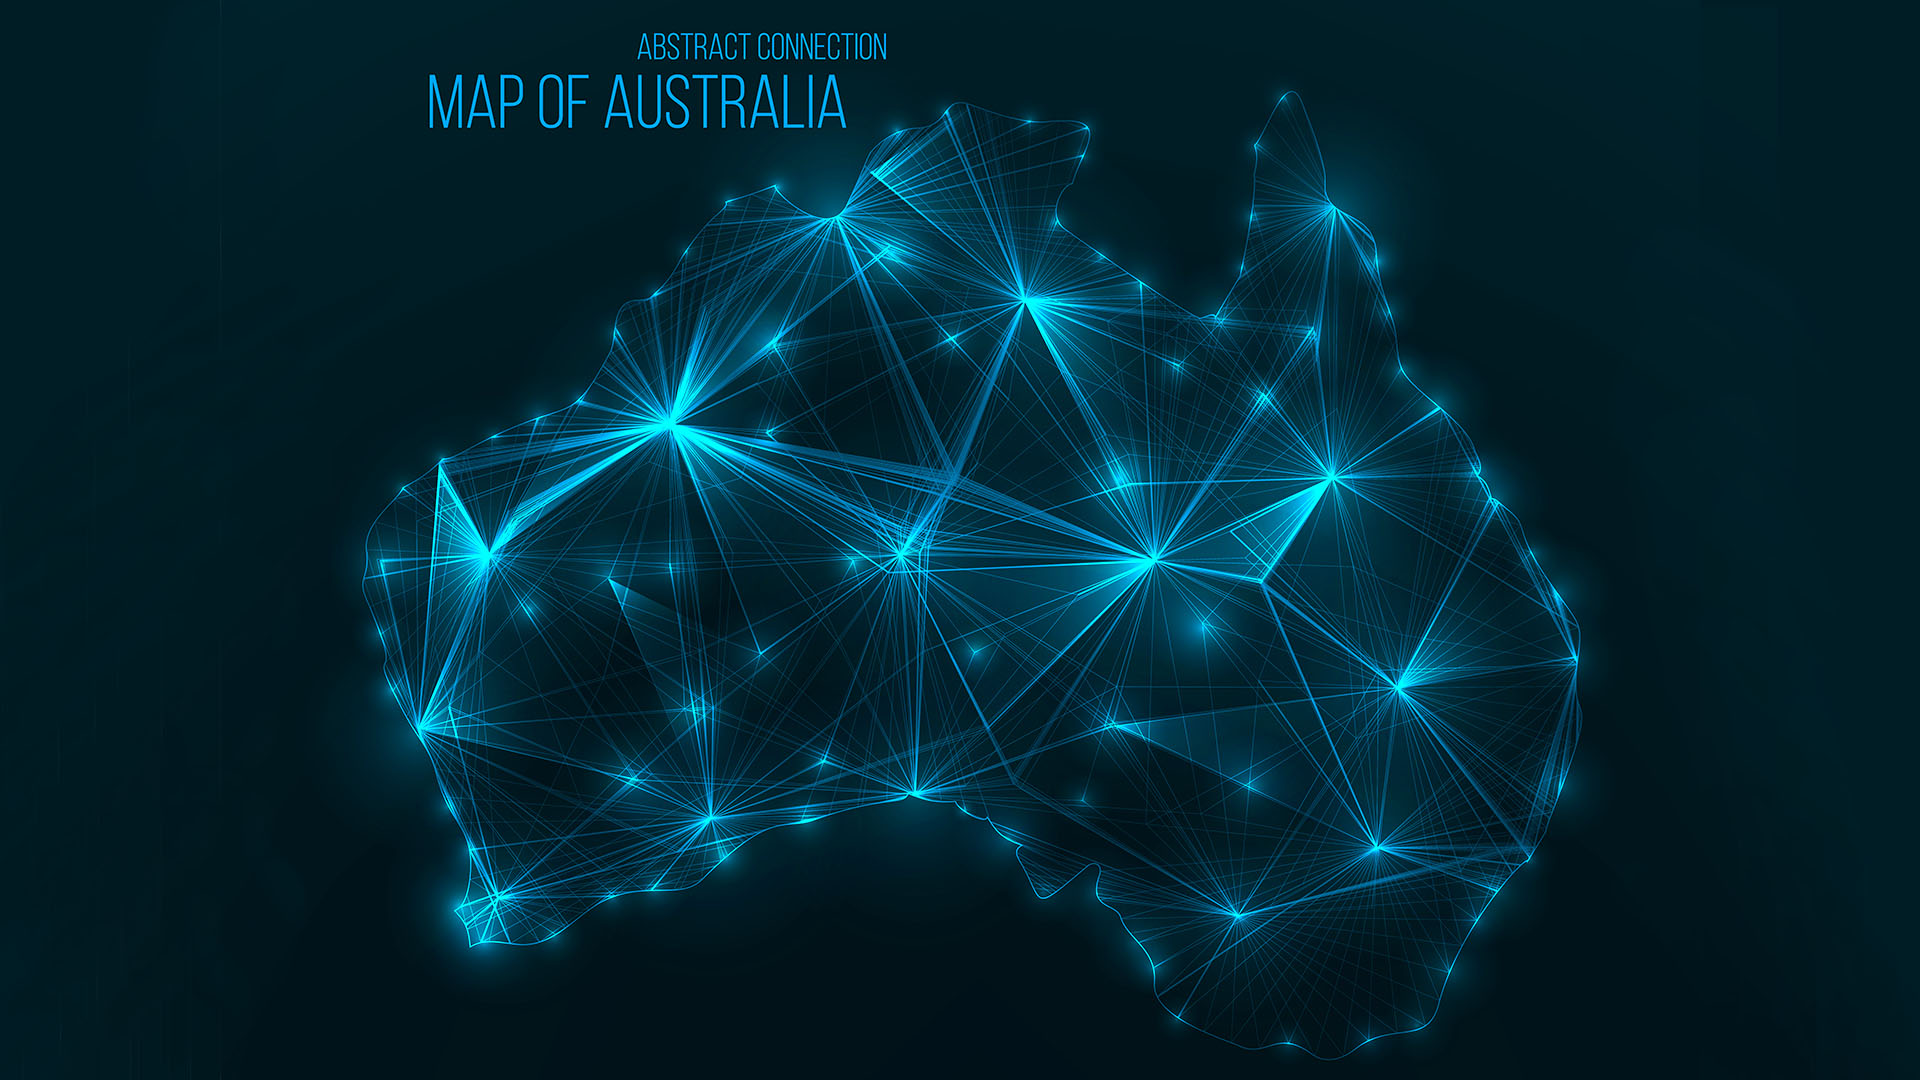 Digital web map of Australia . Global network connection with glowing triangular elements . Abstract country wireframe . Technology vector illustration . Australia geographical shape